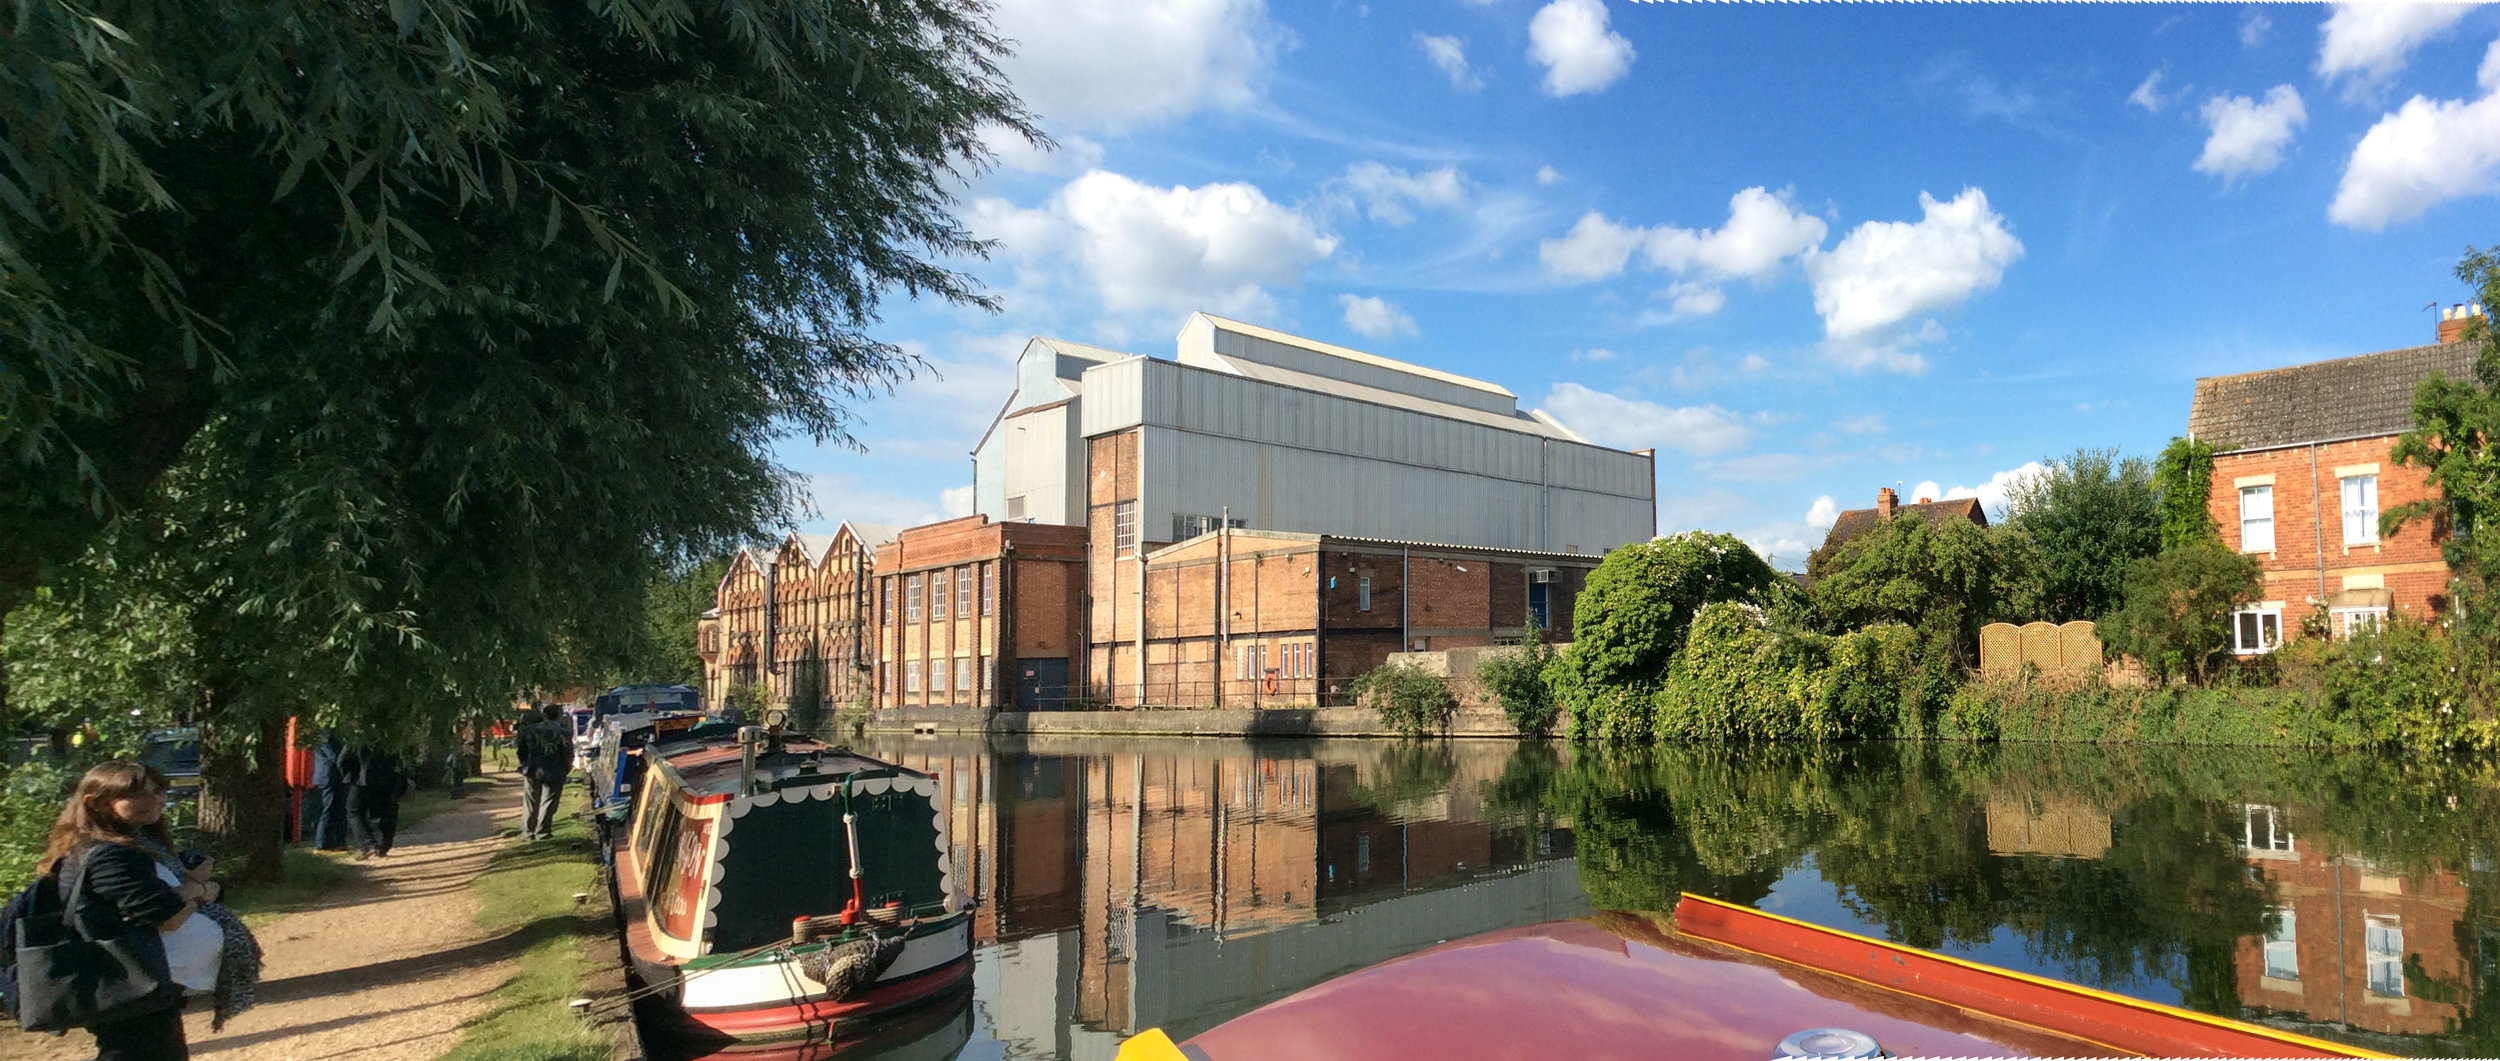 John McAslan + Partners, Osney Power Station in current state 2.jpg